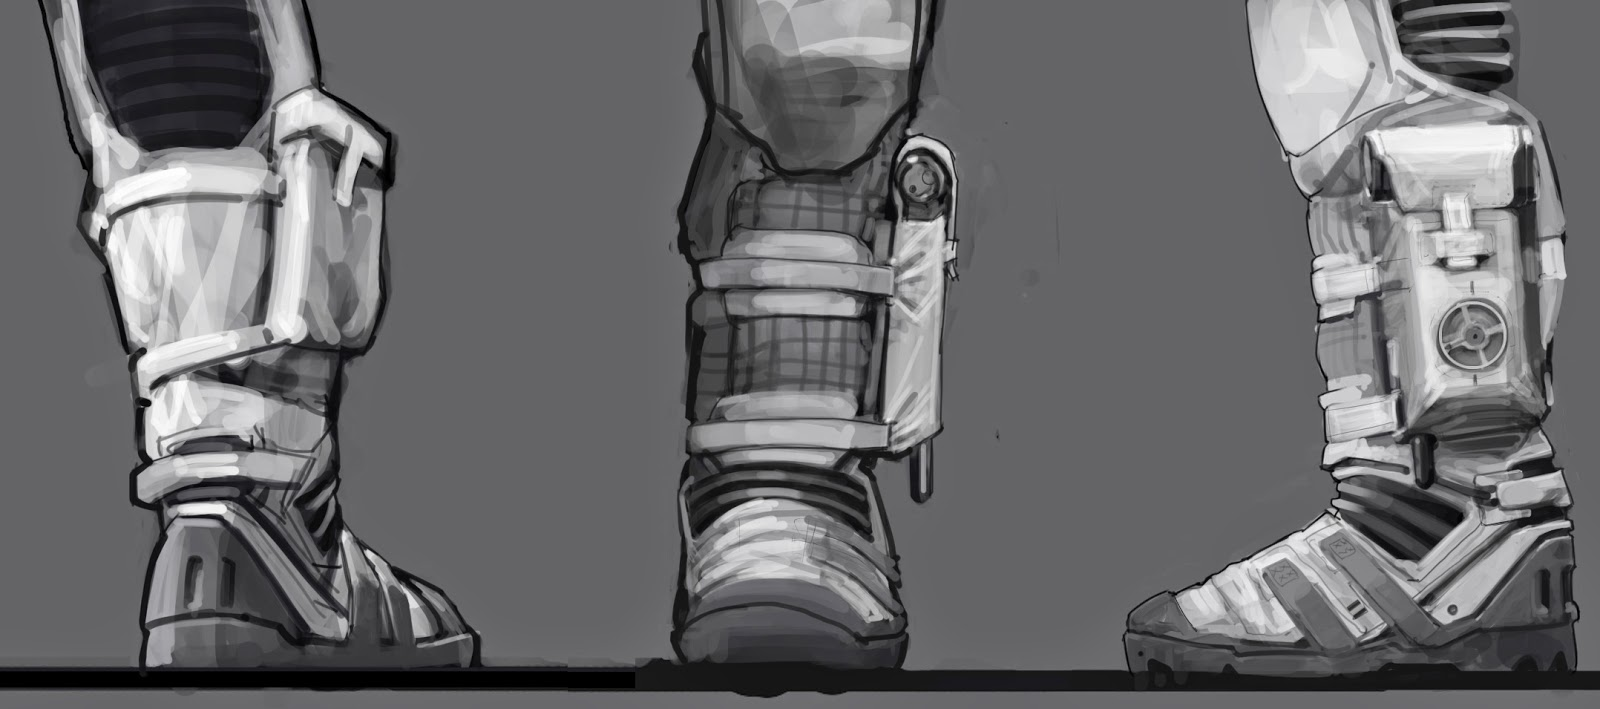 astronaut space boots - photo #25